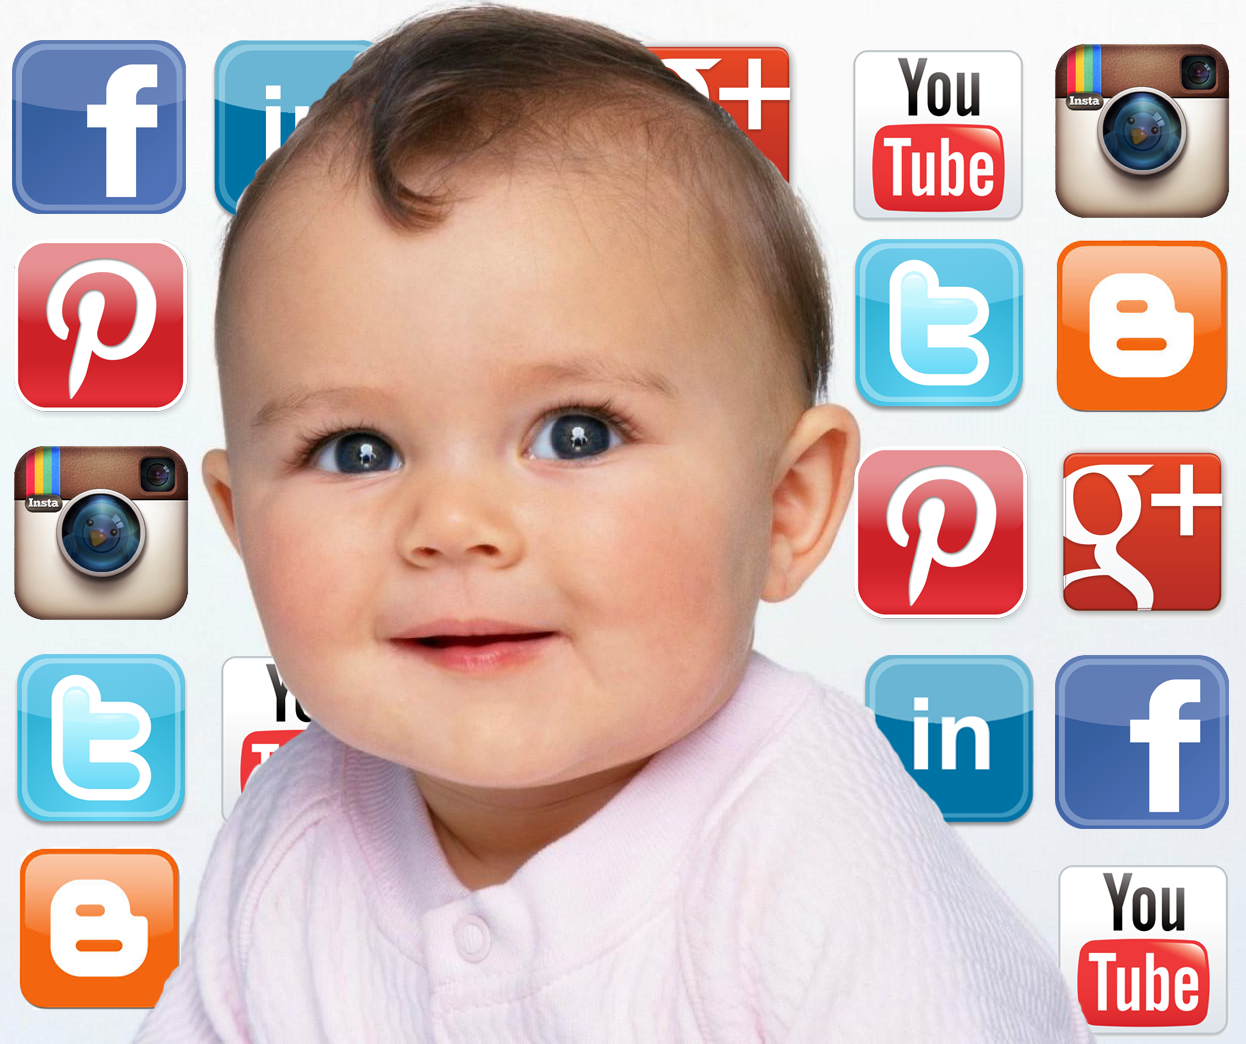 Newbies, like babies, need to start exploring social media